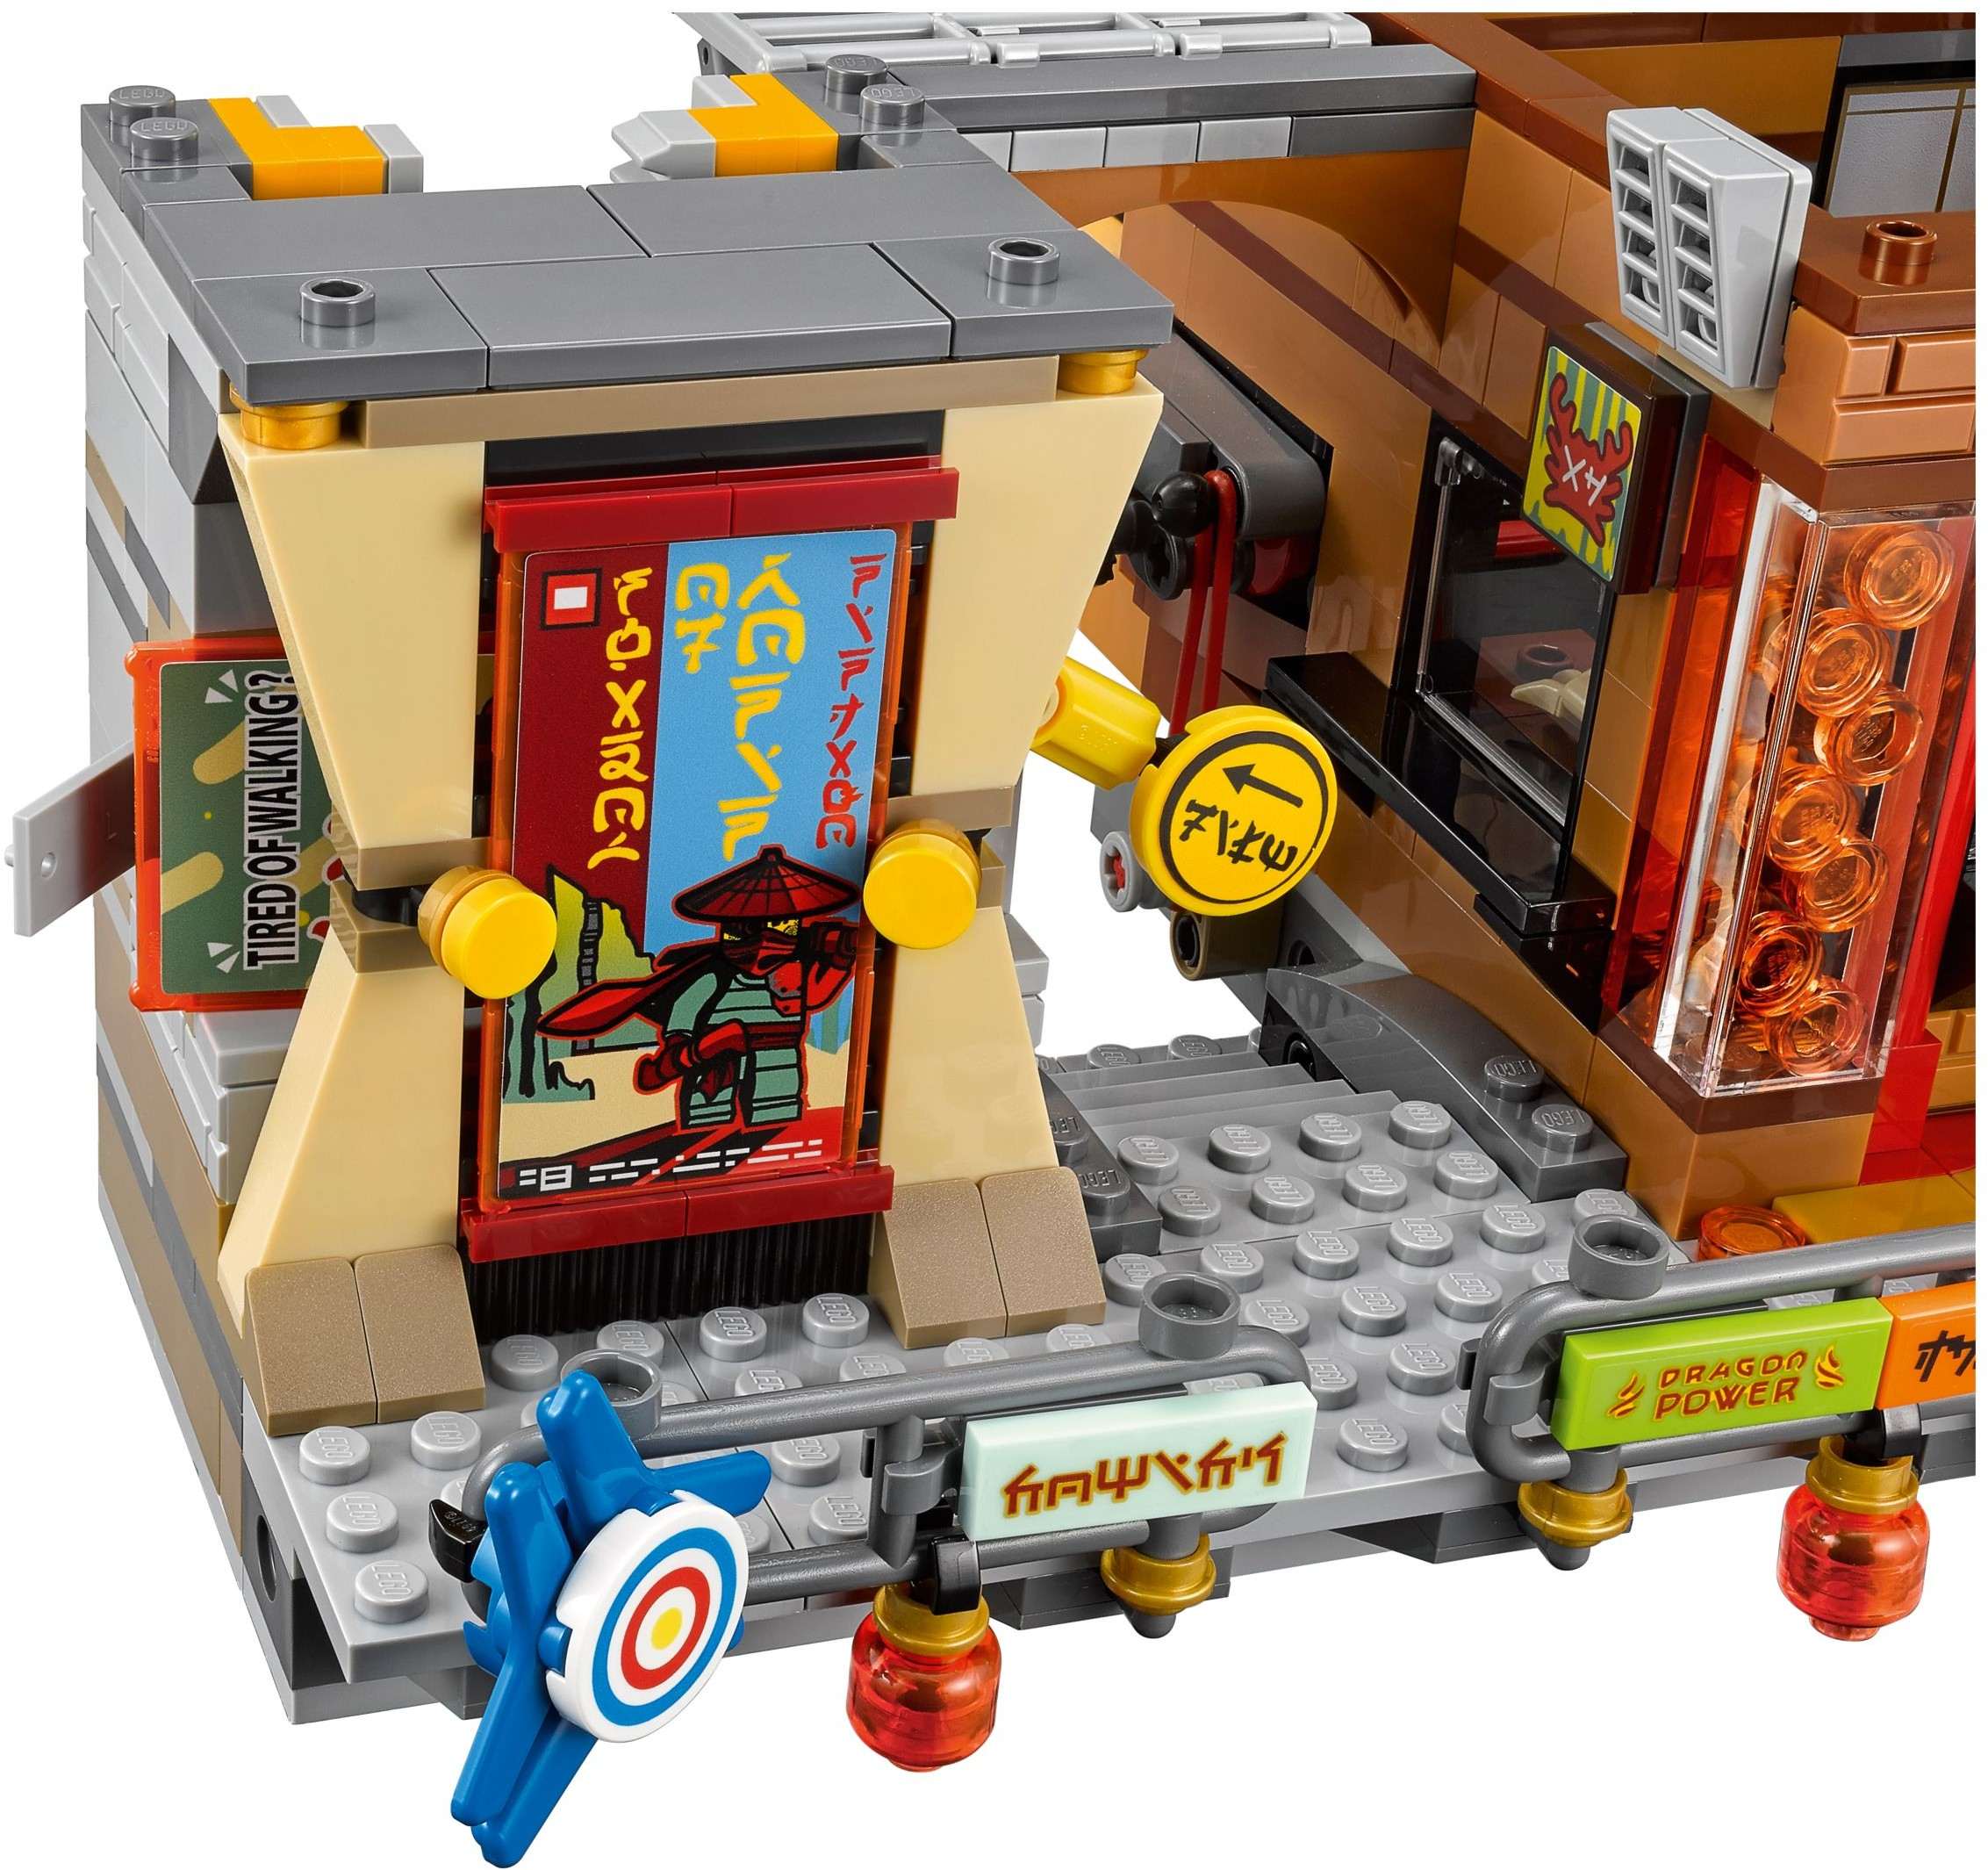 https://images.brickset.com/sets/AdditionalImages/70620-1/70620_alt11.jpg